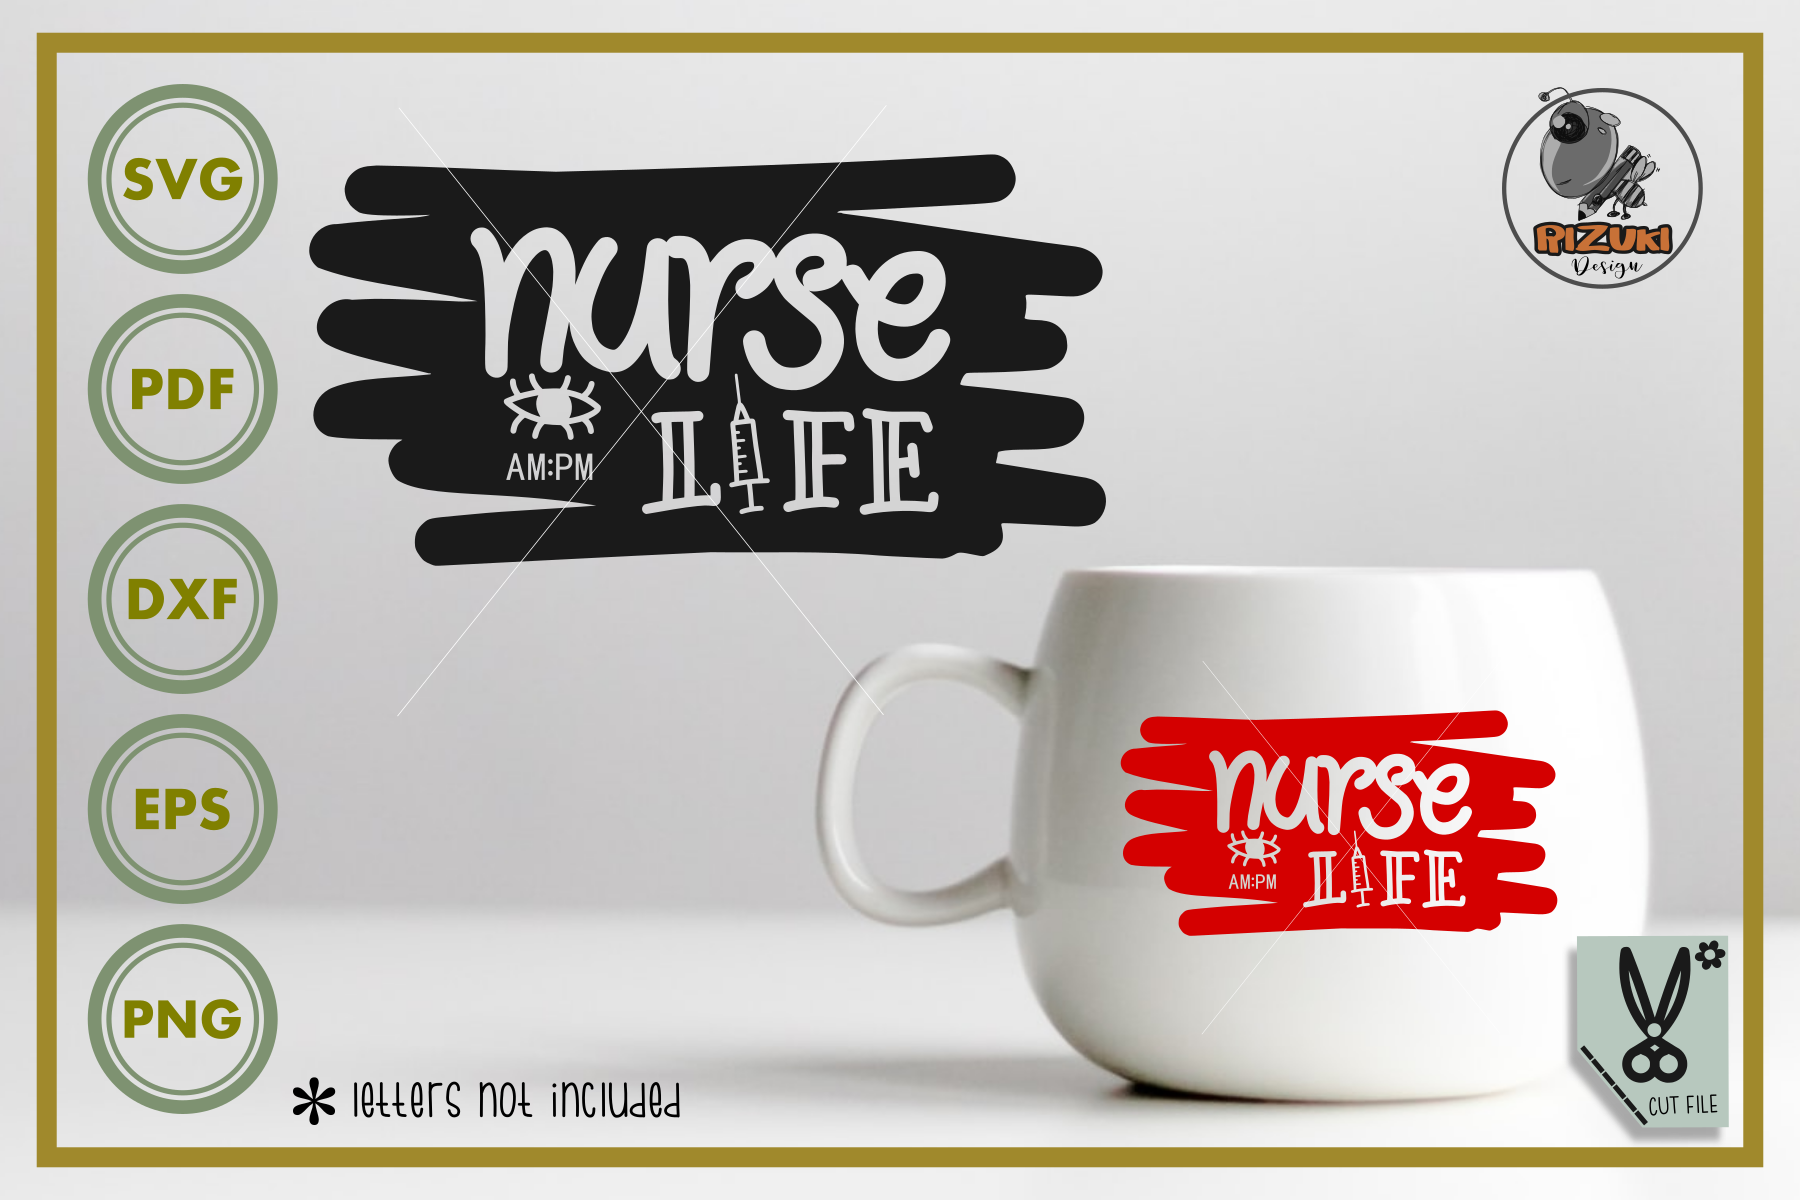 Download Free Nurse Life Silhouette Graphic By Rizuki Store Creative Fabrica for Cricut Explore, Silhouette and other cutting machines.